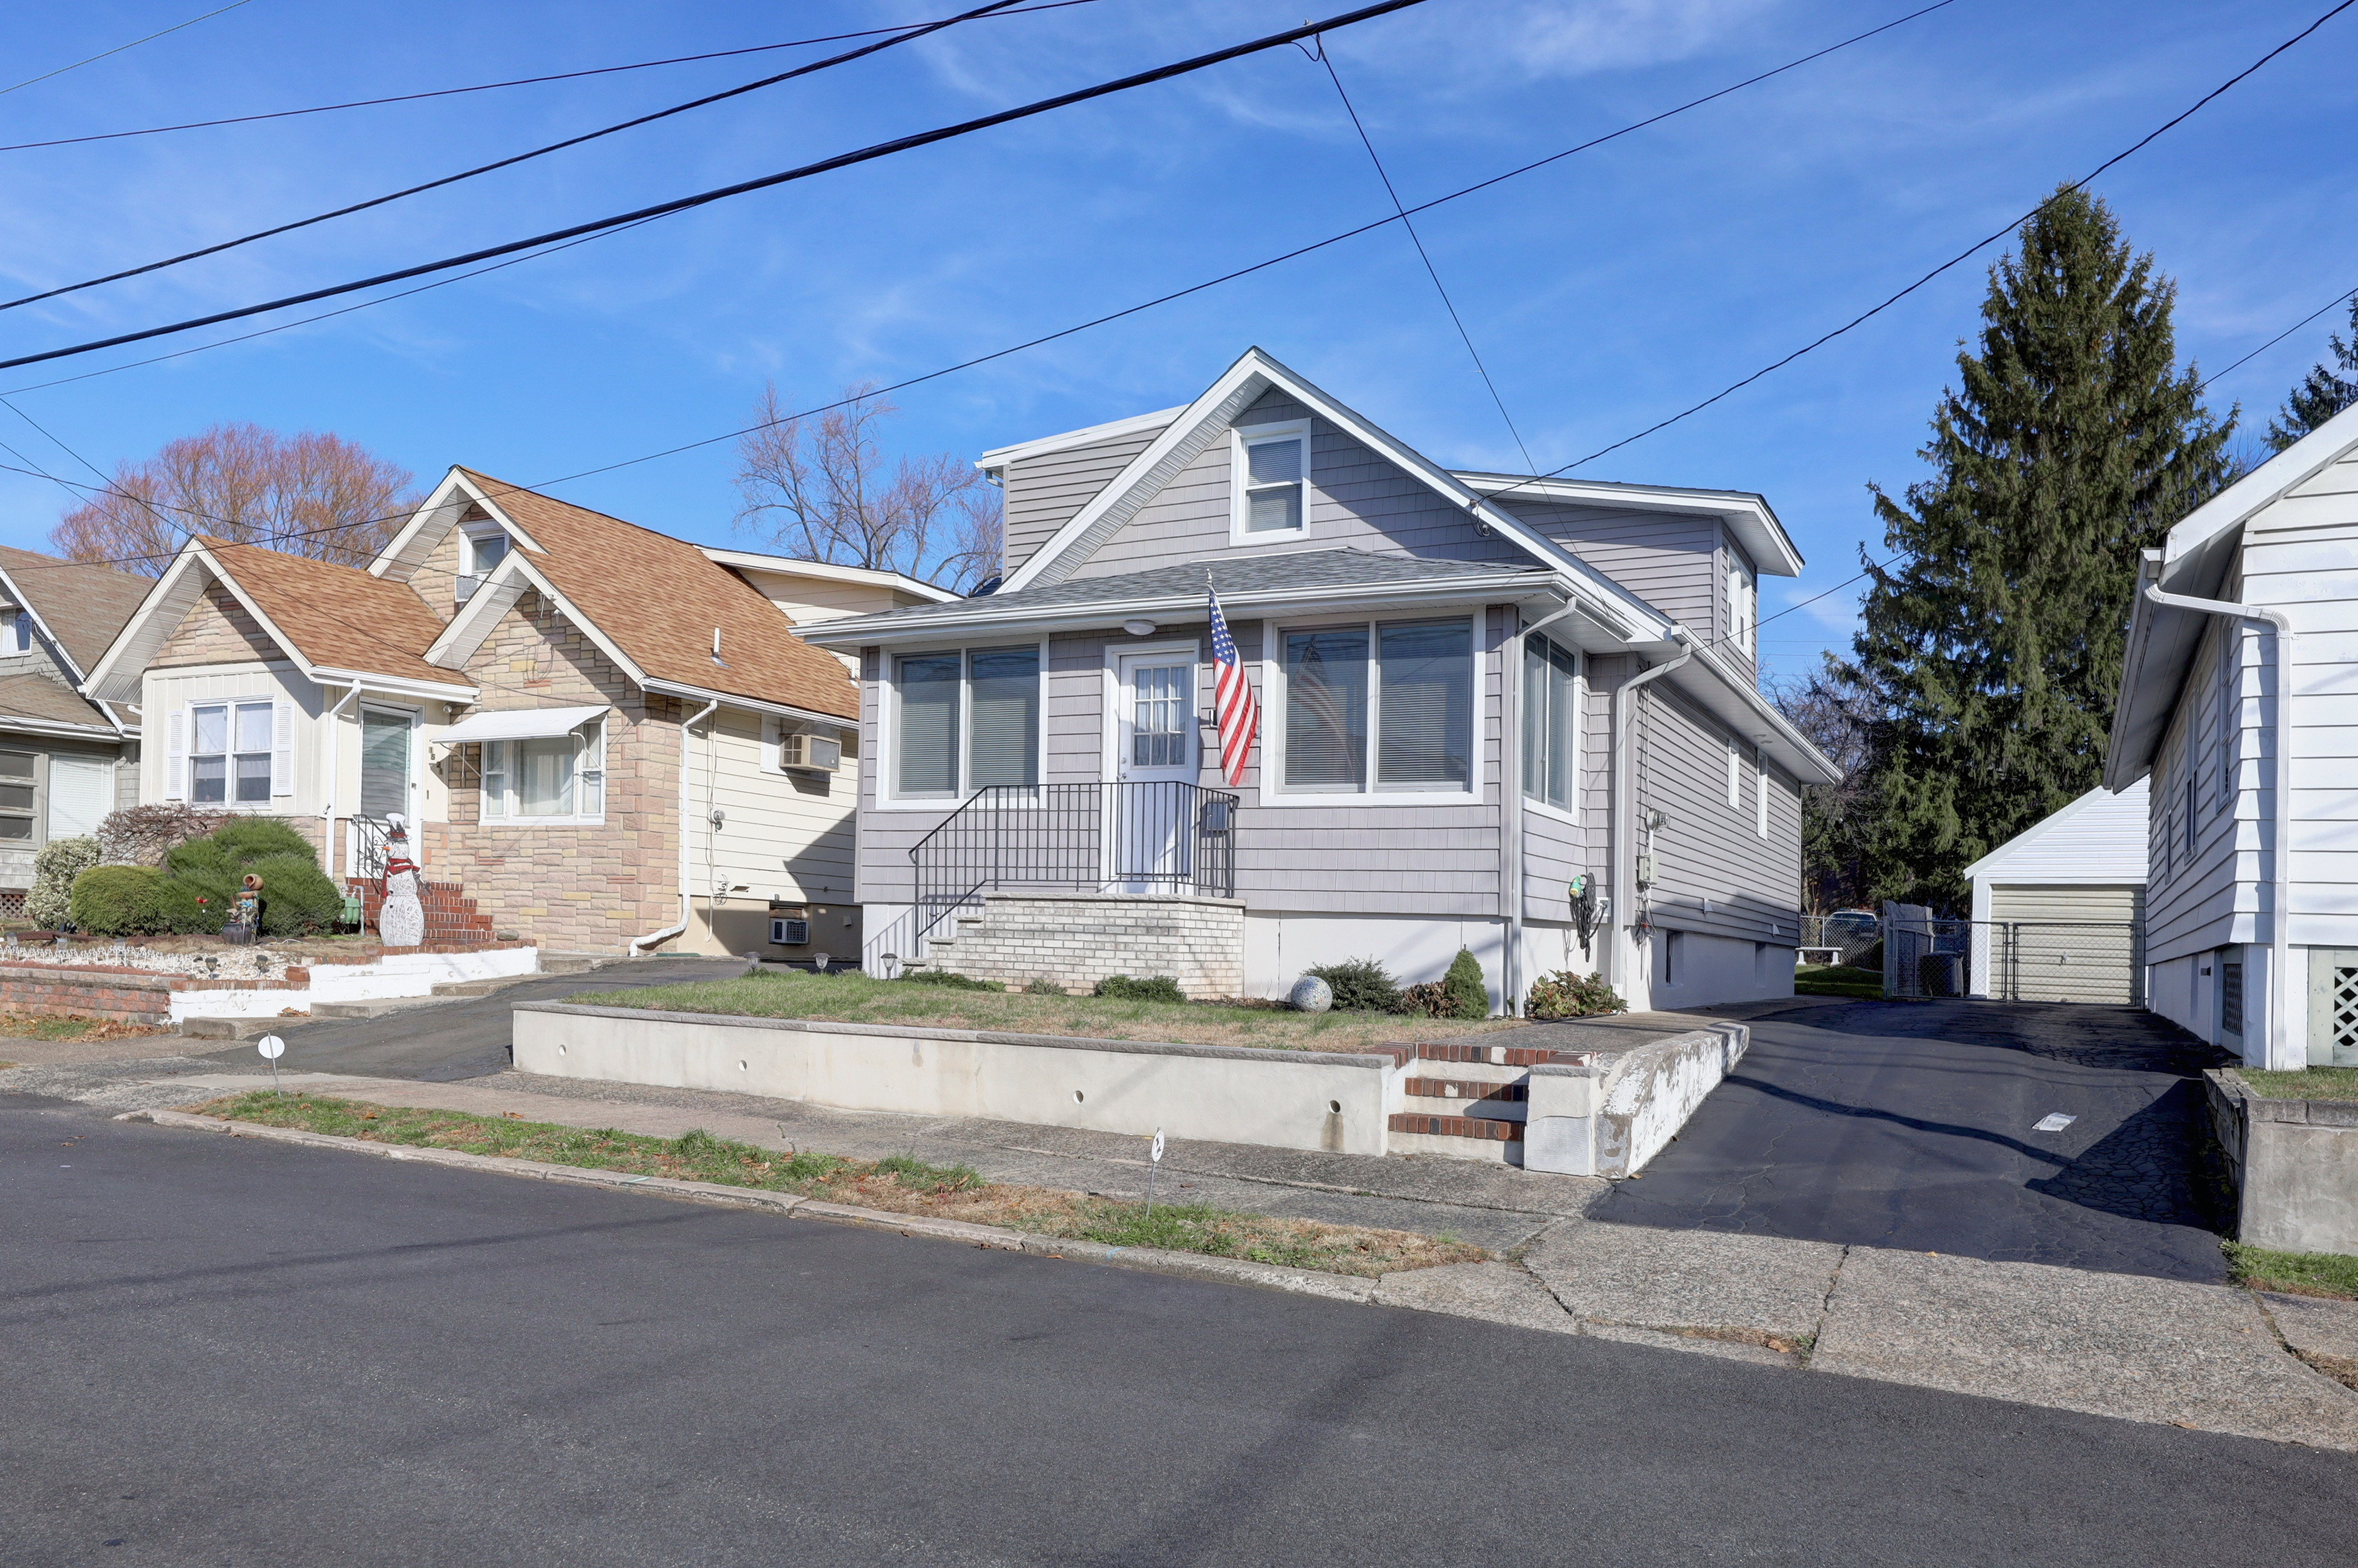 15-19 George St., Fair Lawn, NJ